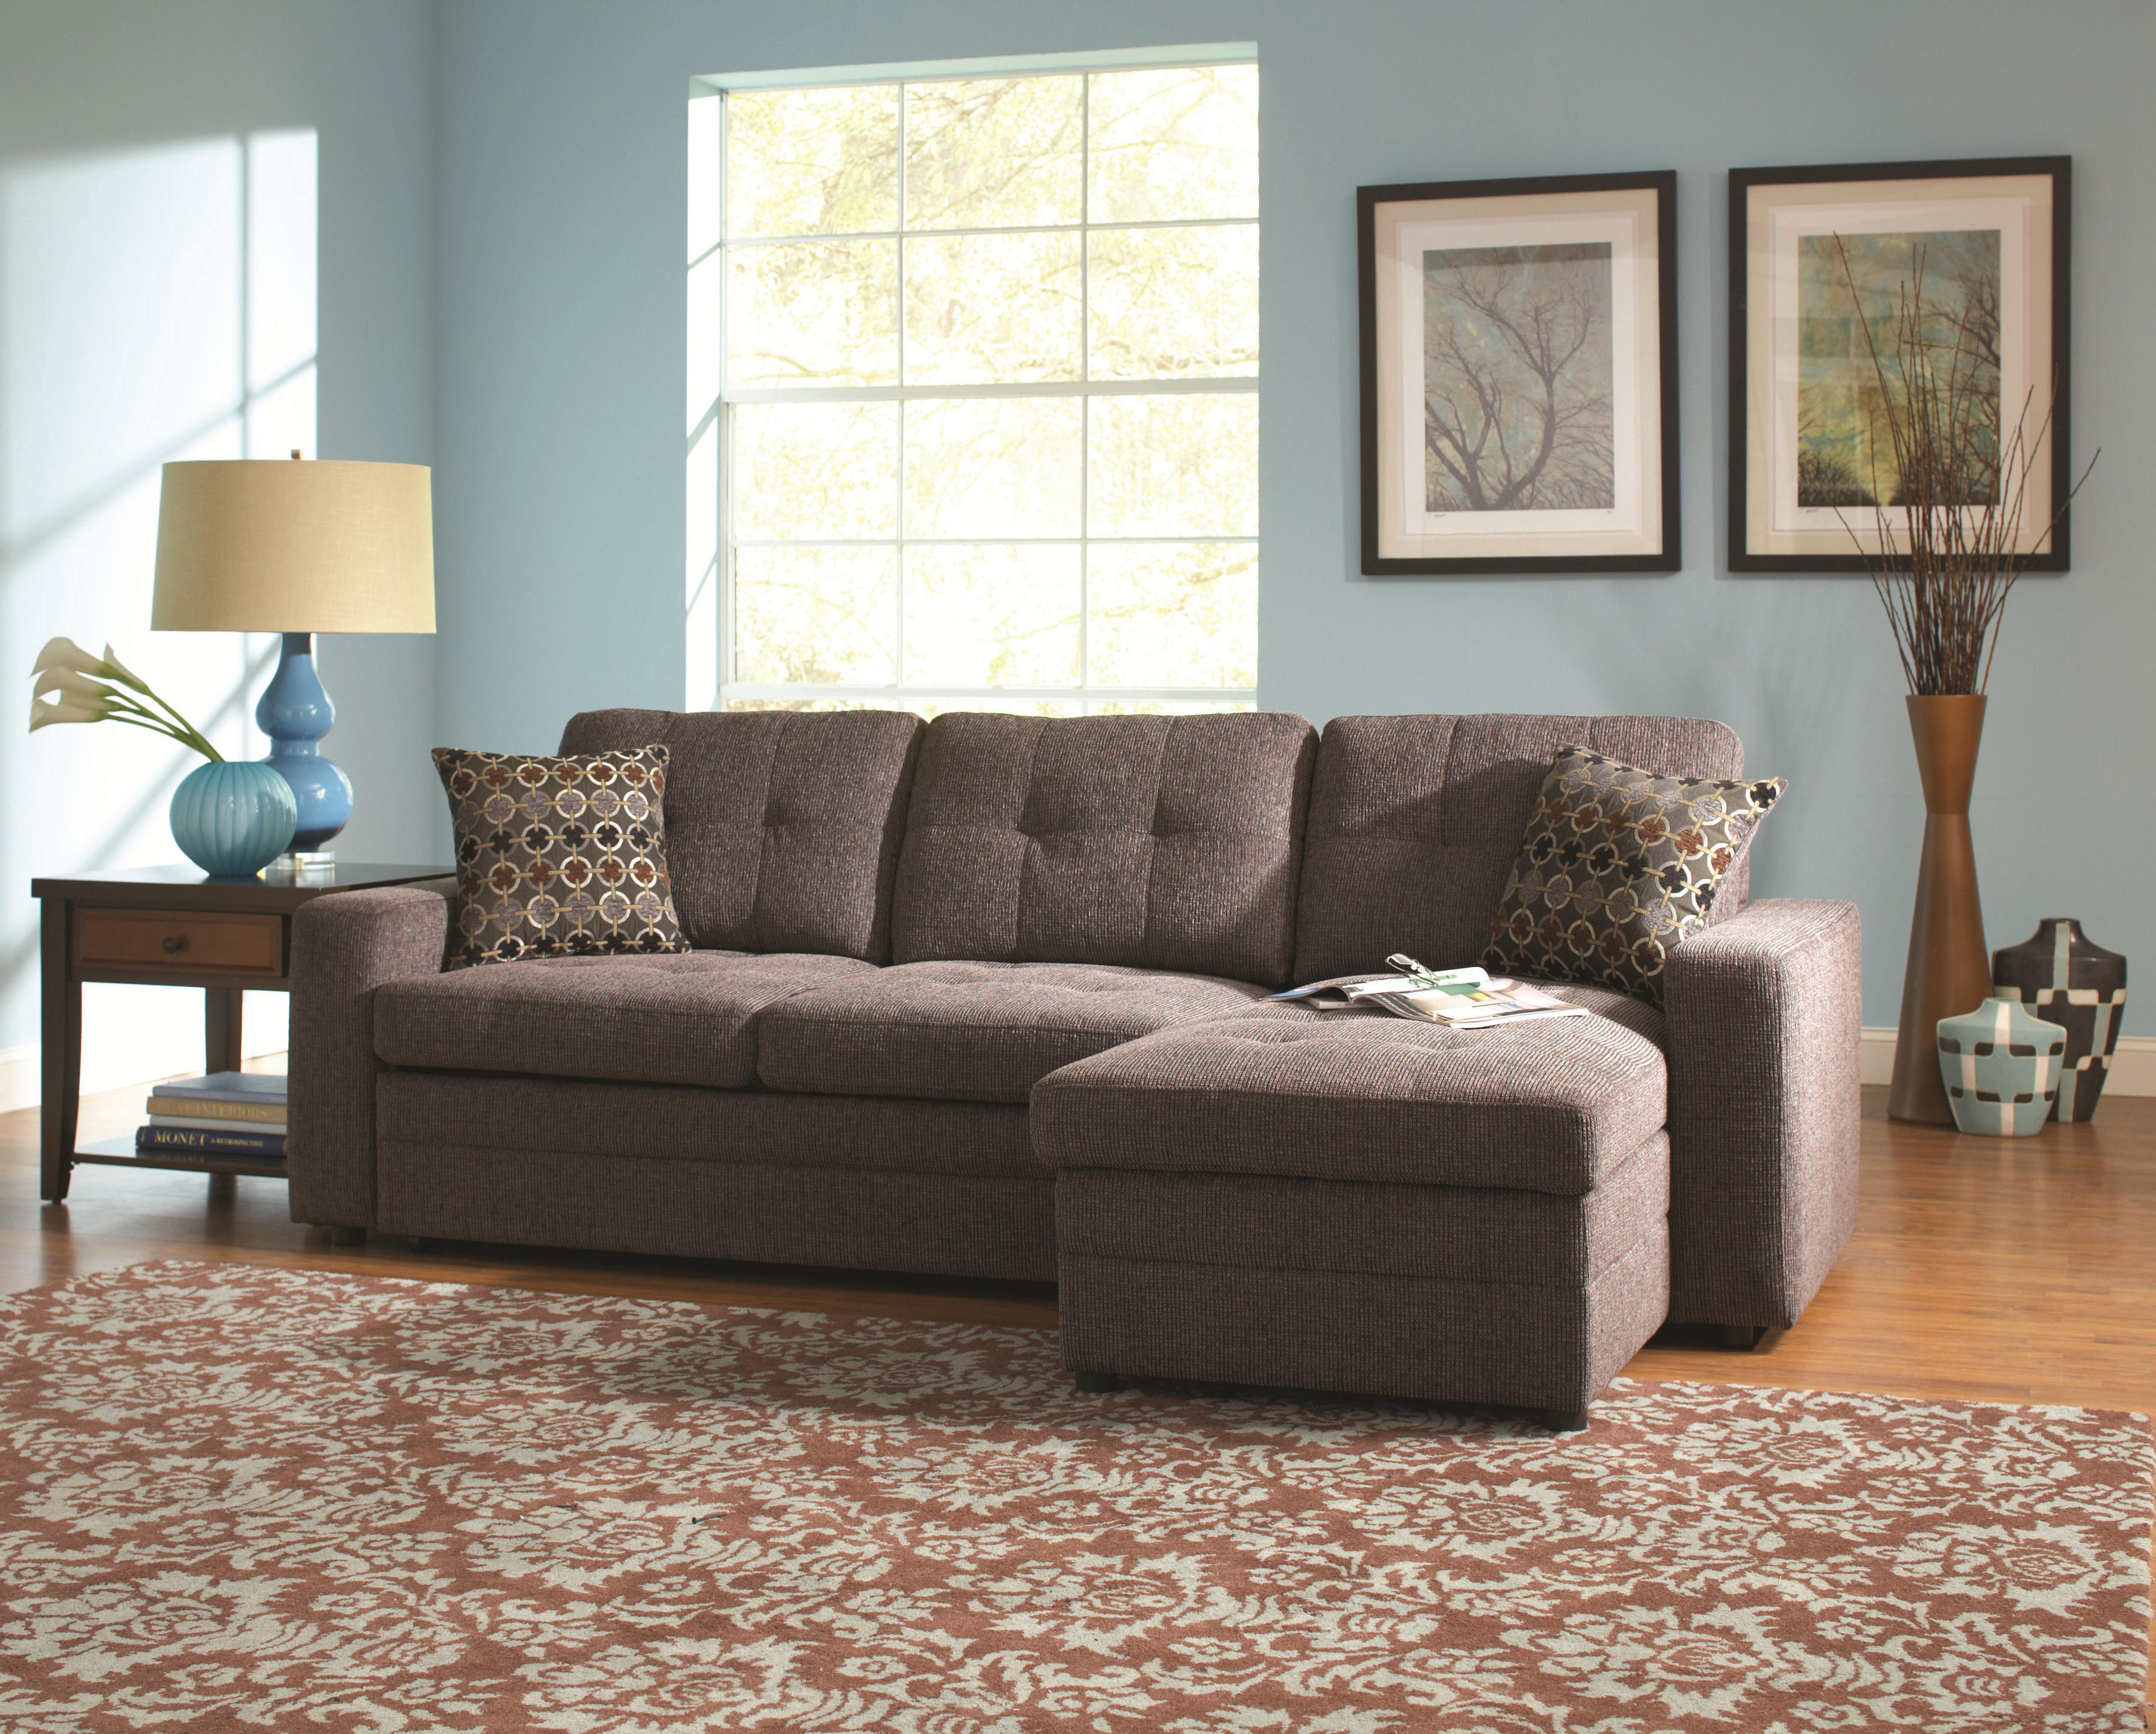 Coaster Gus Sectional Sofa with Tufts Storage and Pull Out Bed